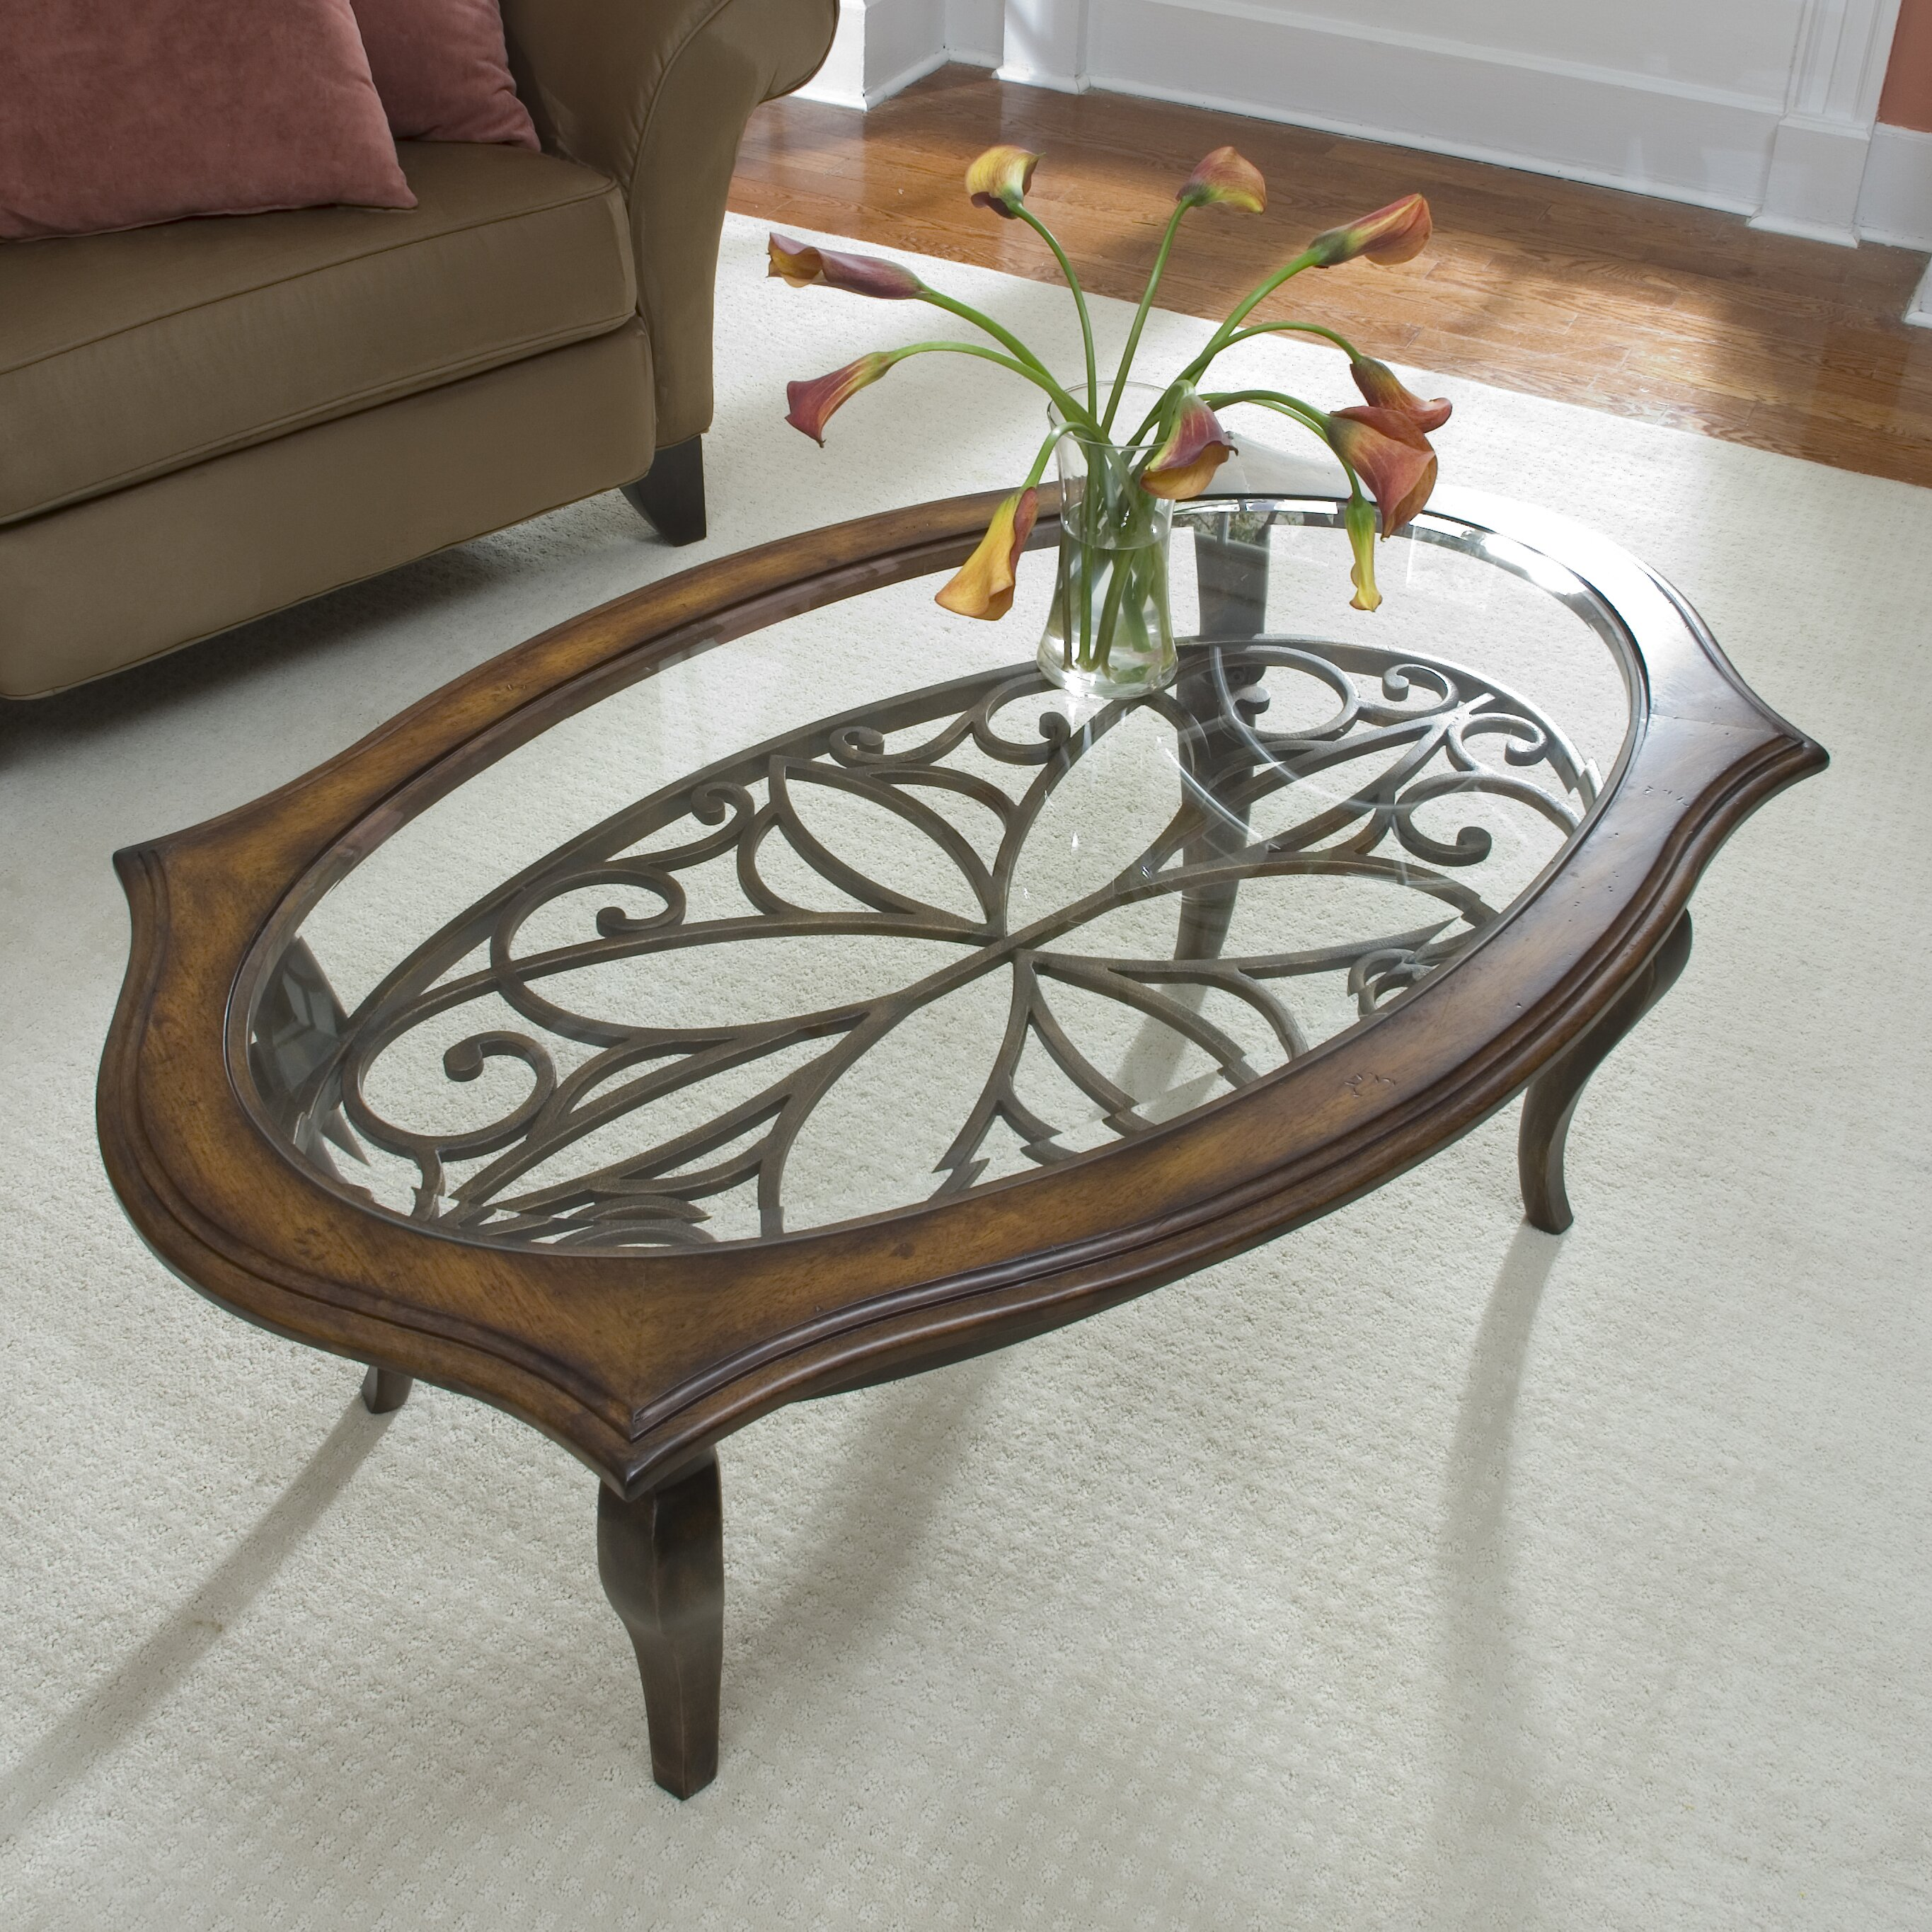 Jordan S Furniture Coffee Table Sets: Riverside Furniture Serena Coffee Table Set & Reviews